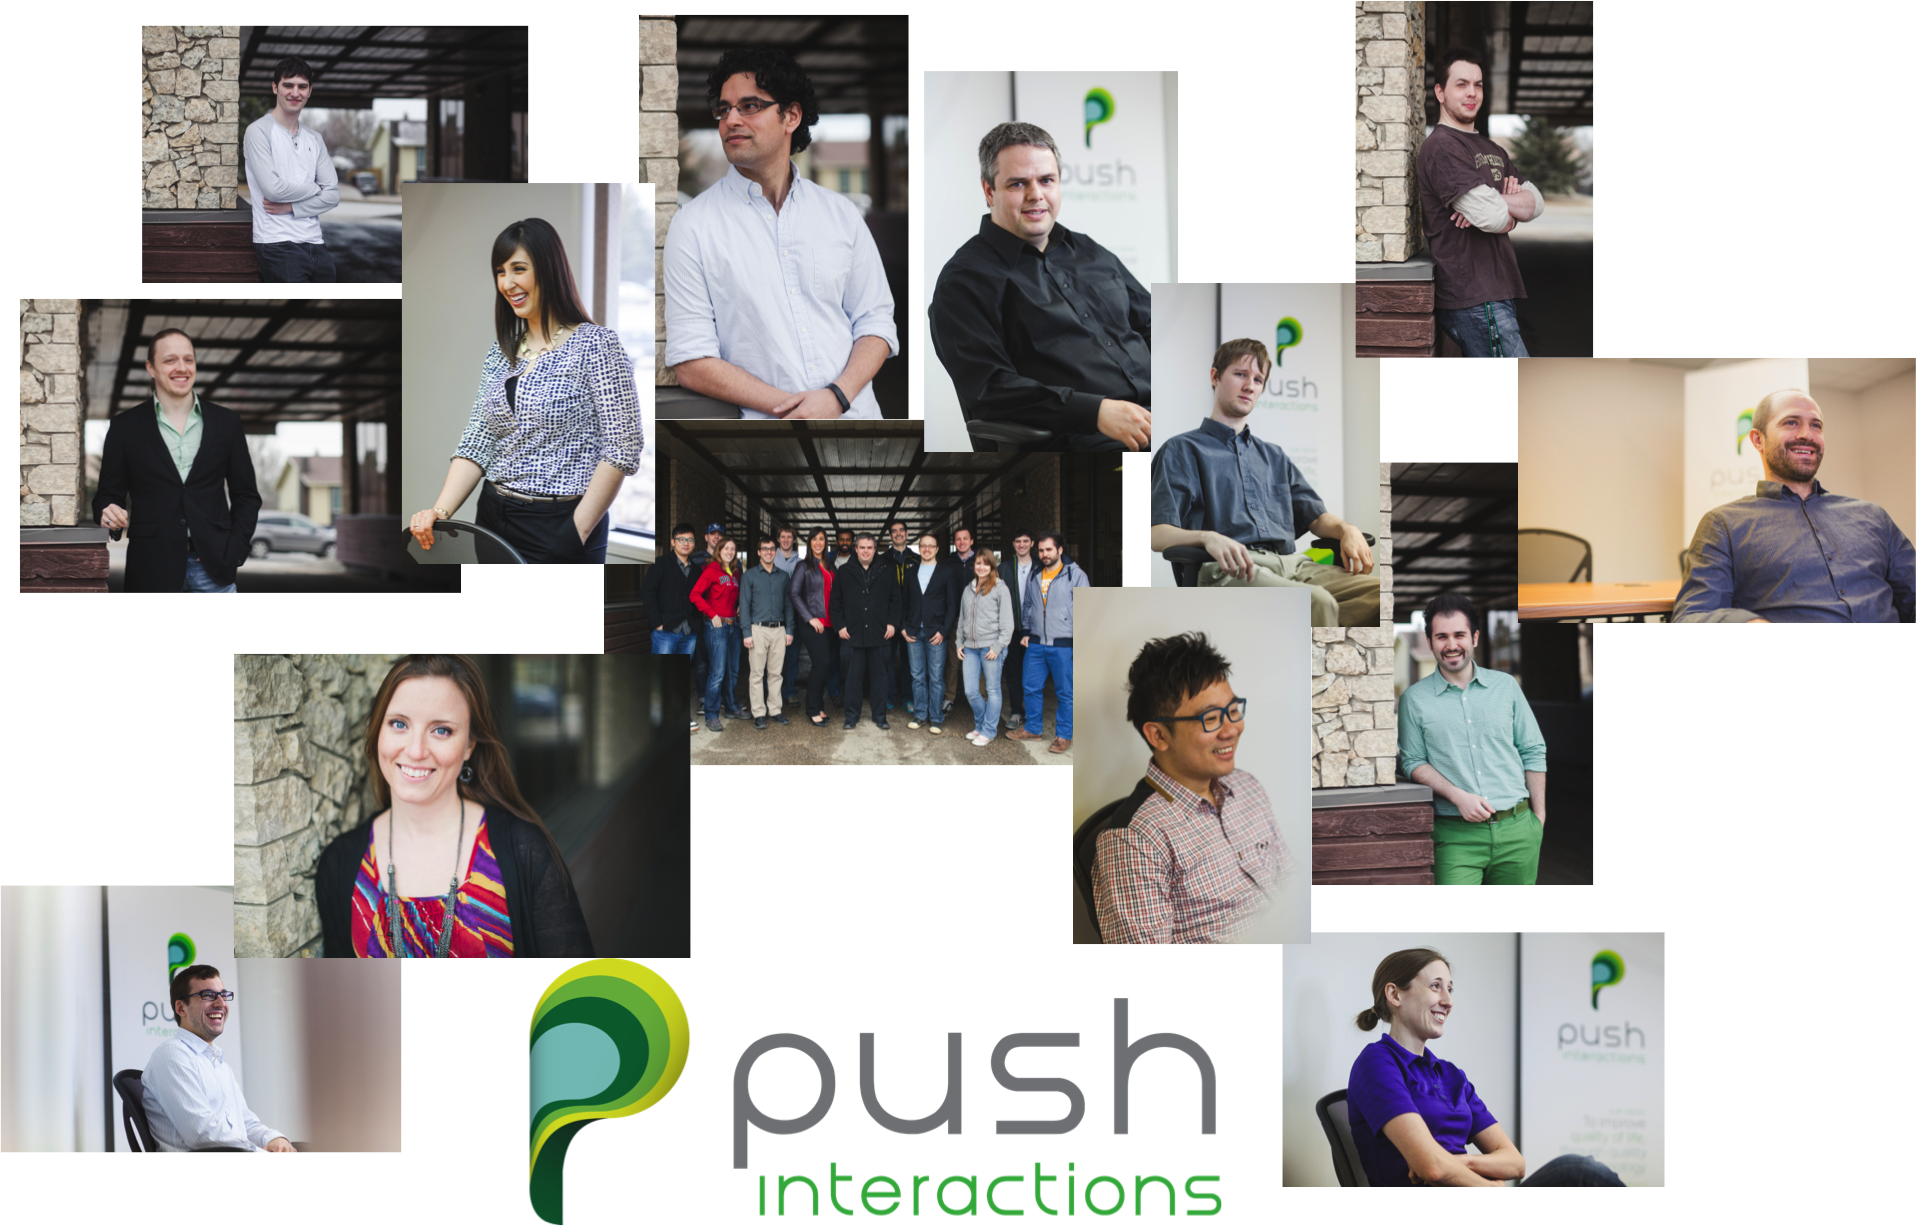 Push Interactions 5th Birthday Celebration - Team Collage